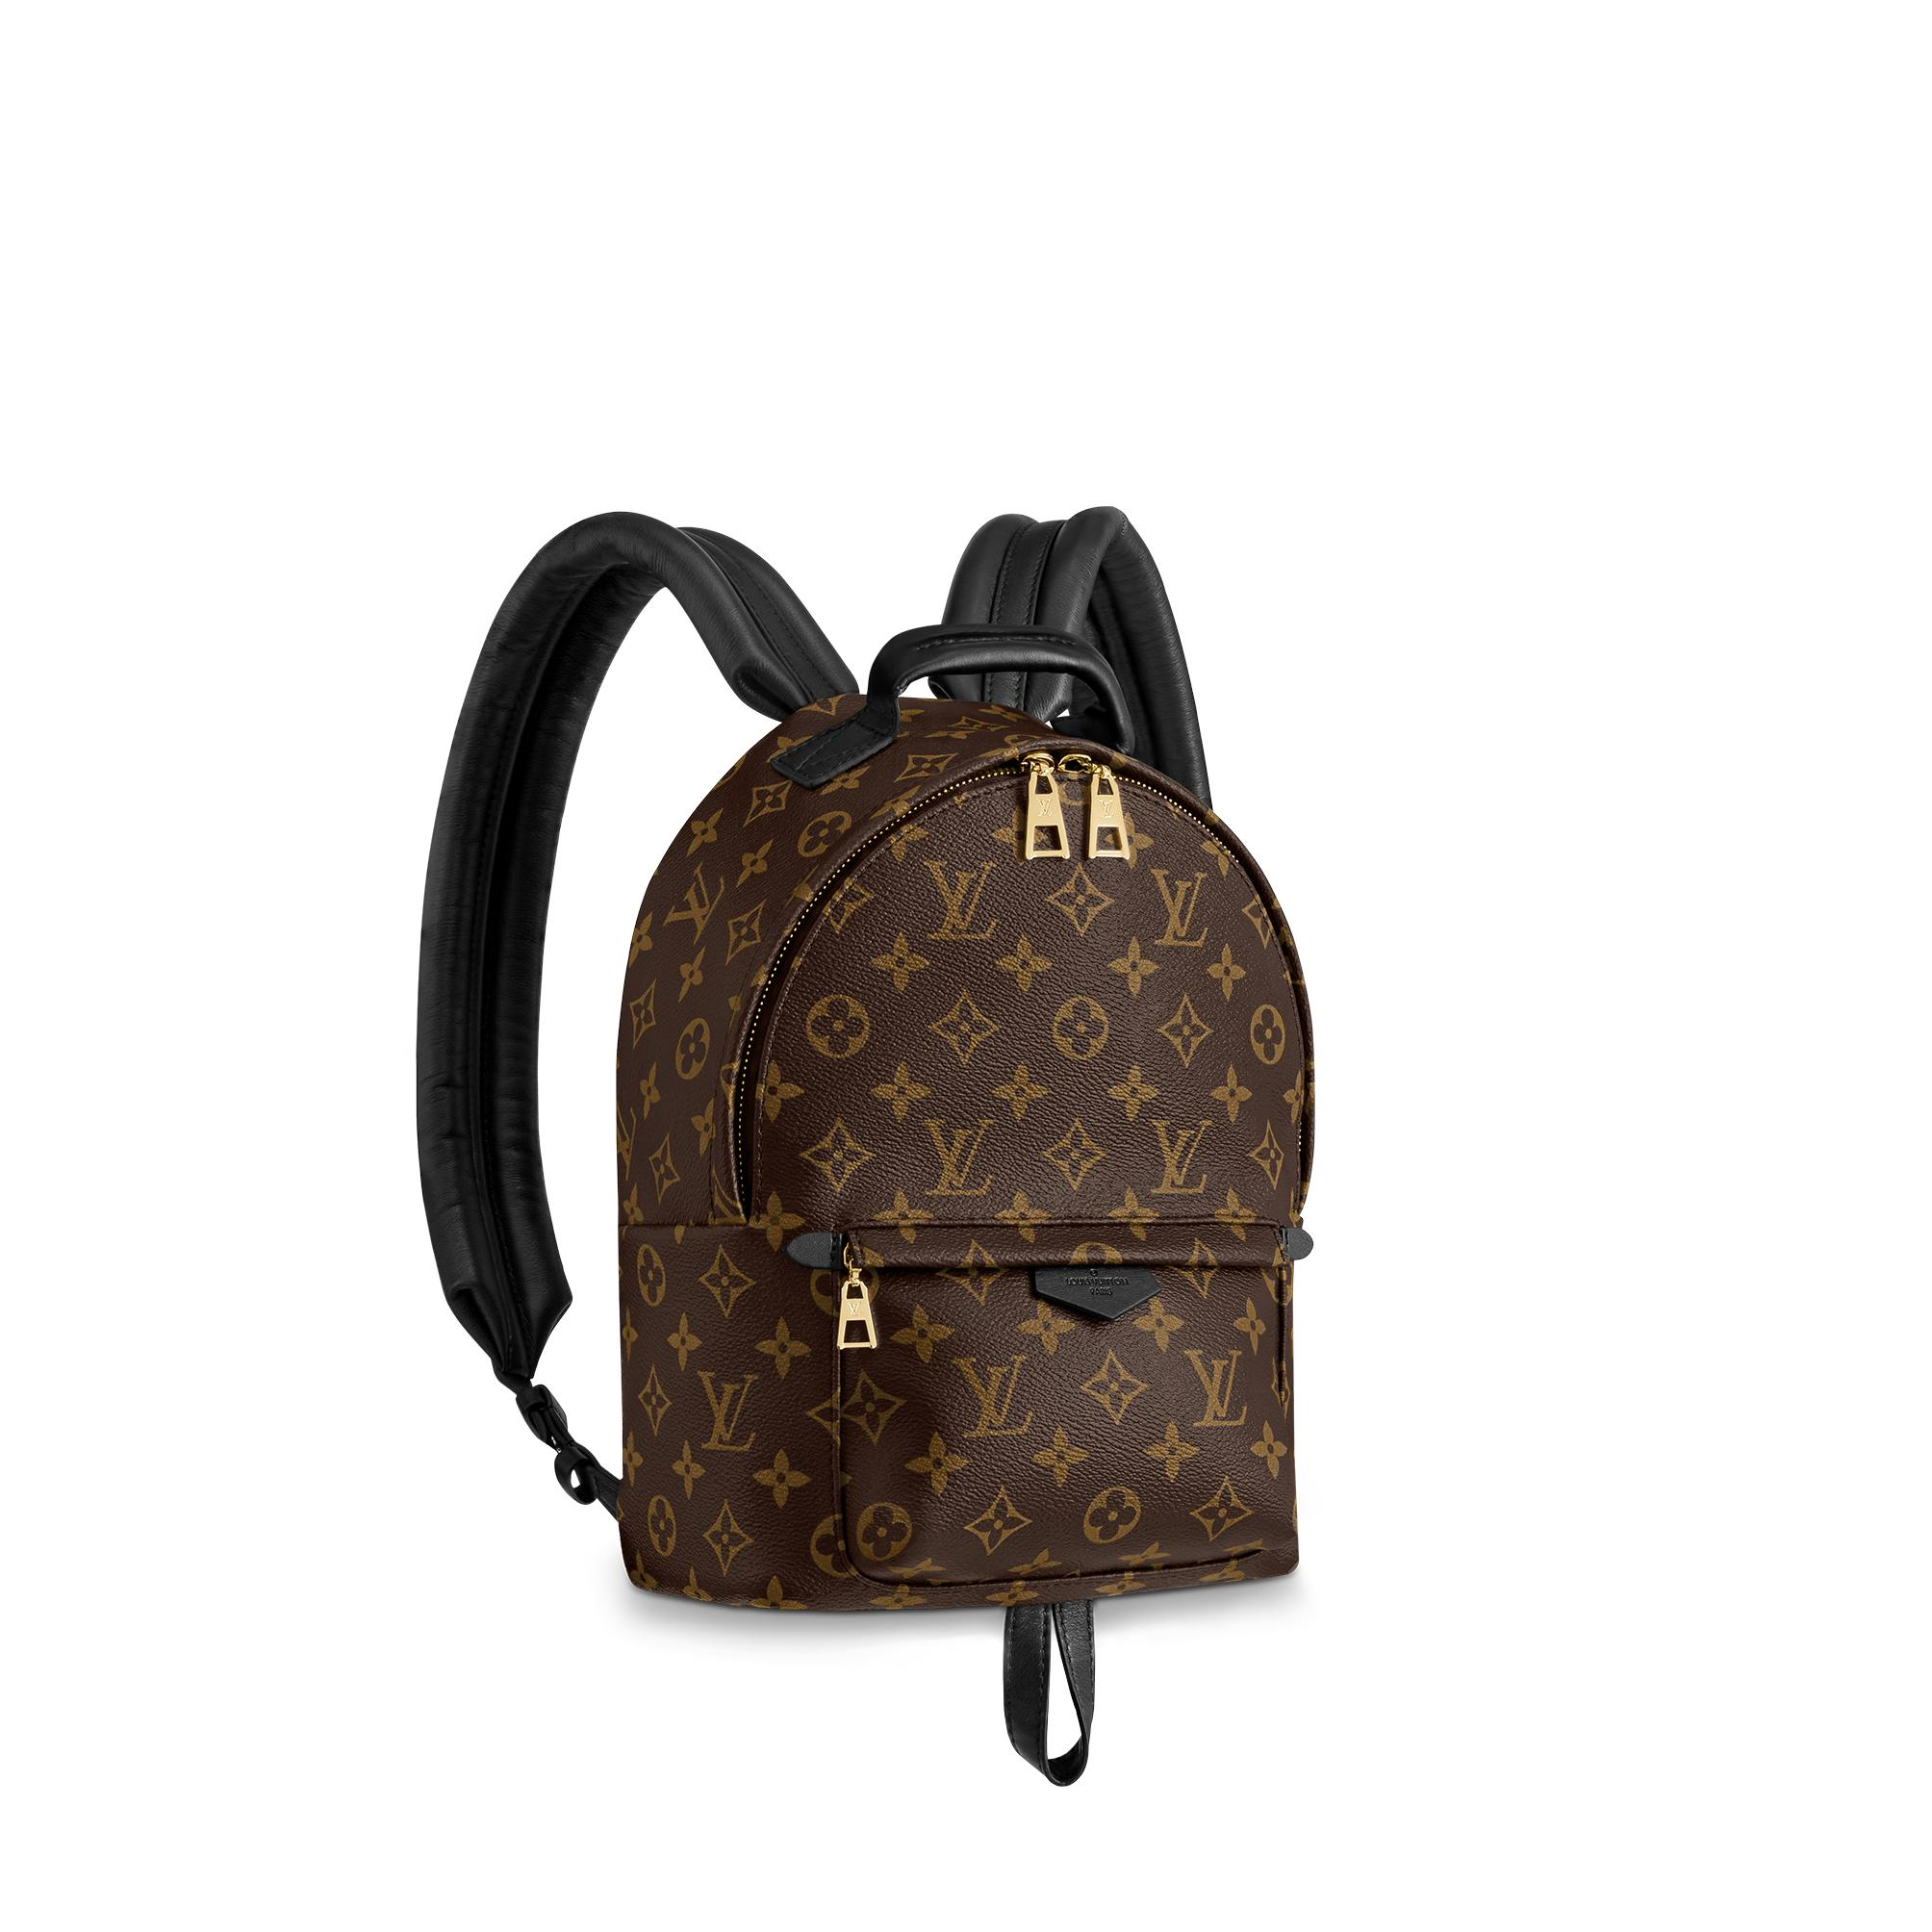 Palm Springs Backpack Pm Monogram Handbags Louis Vuitton